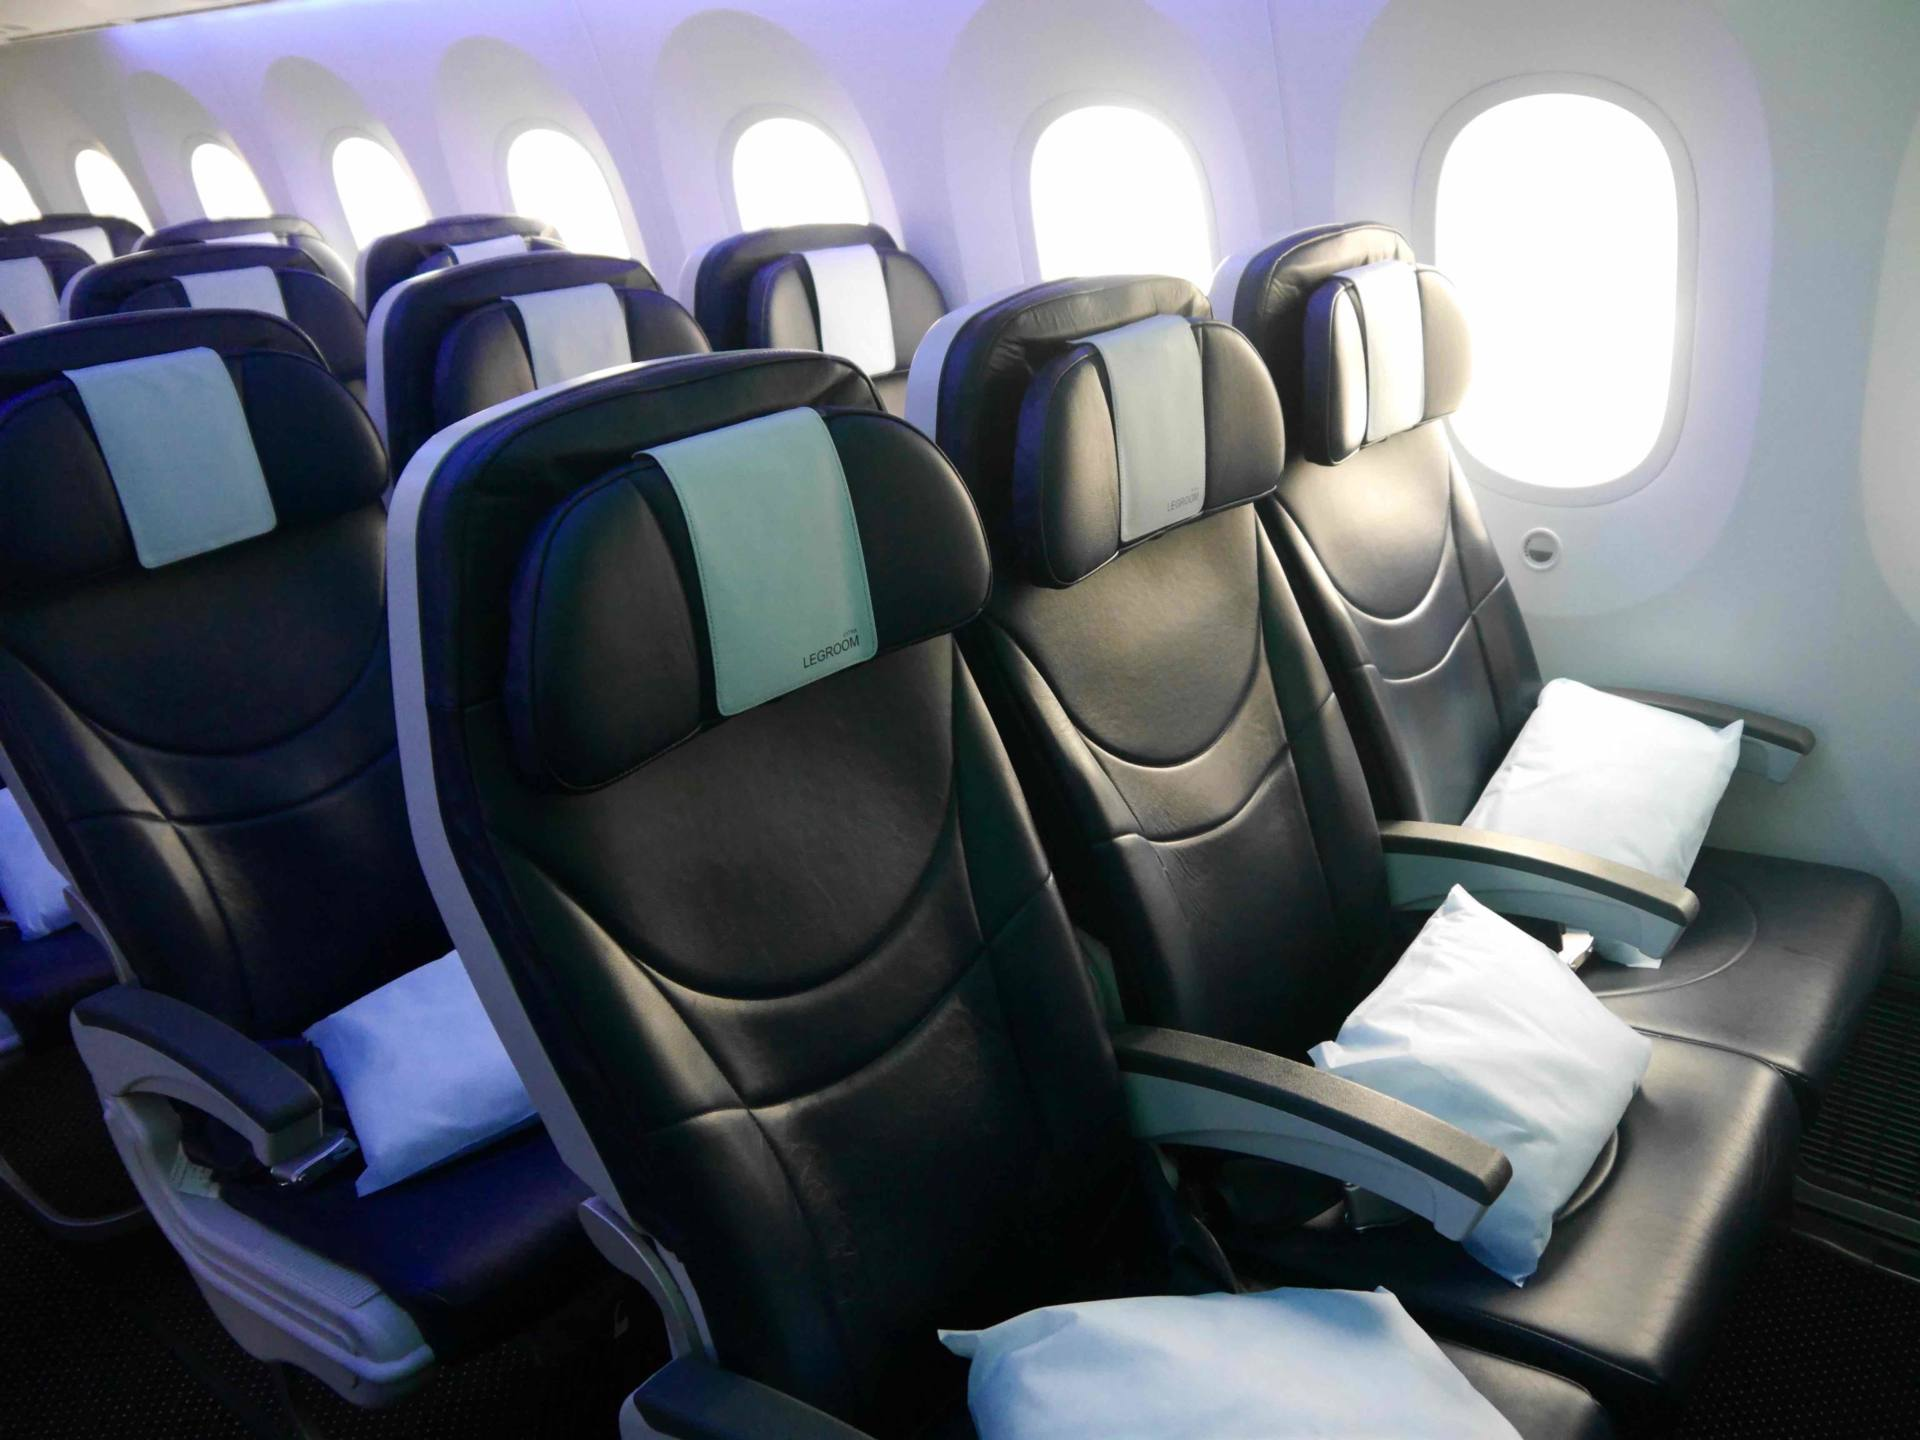 Get better sleep whilst travelling abroad on the TUI dreamliner